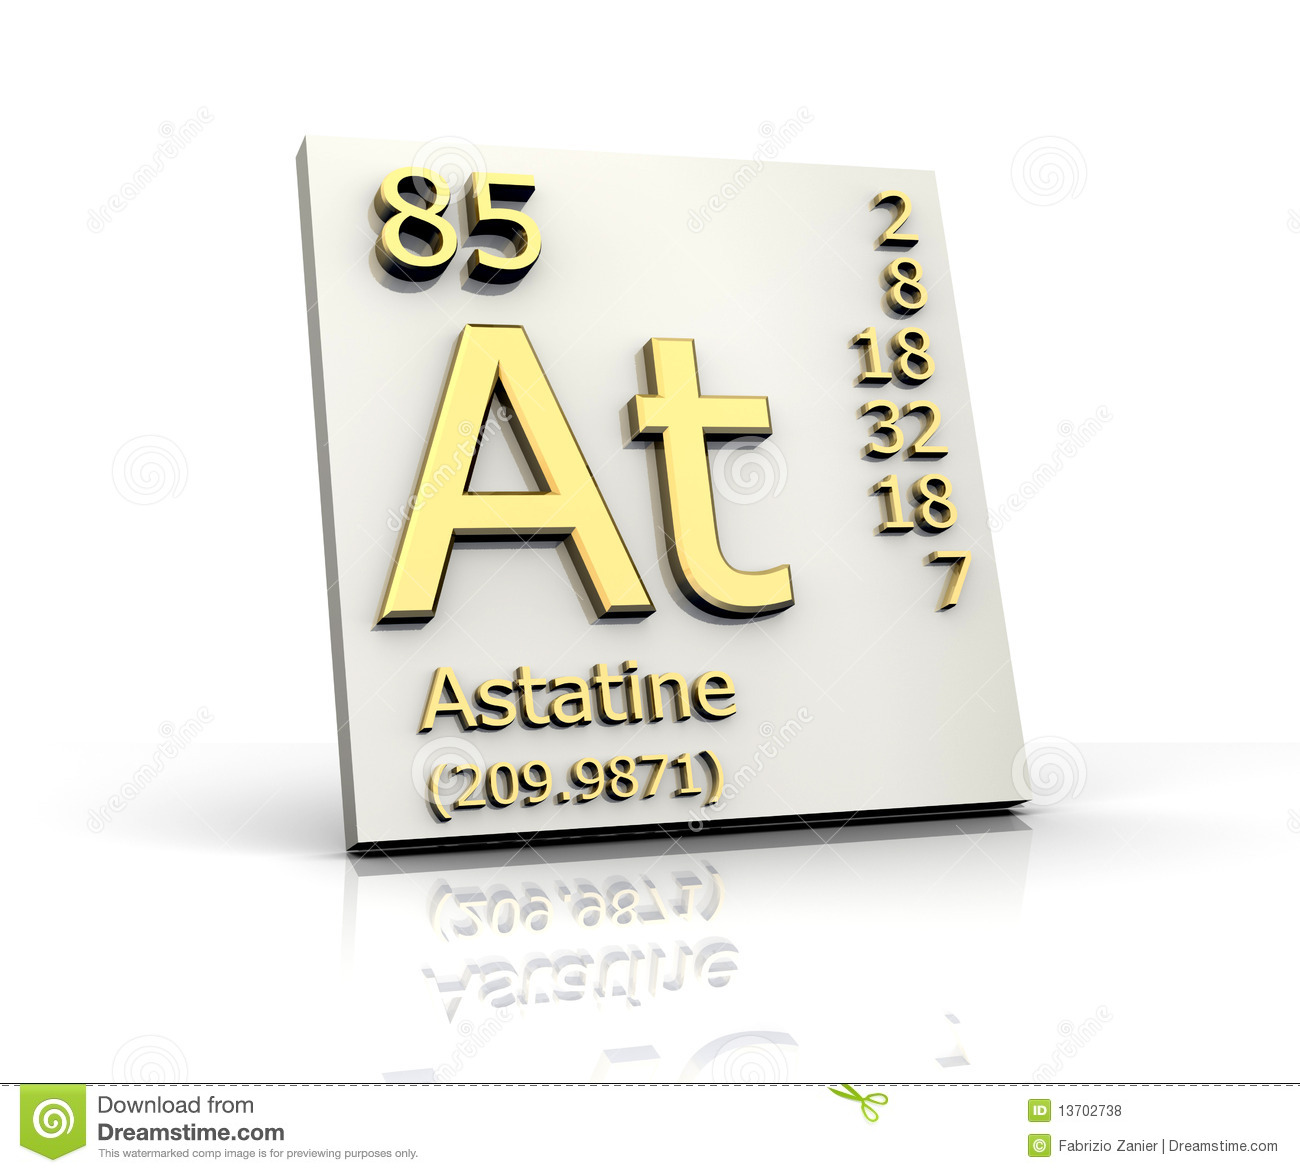 Astatine form periodic table of elements stock illustration royalty free stock photo download astatine form periodic table gamestrikefo Image collections